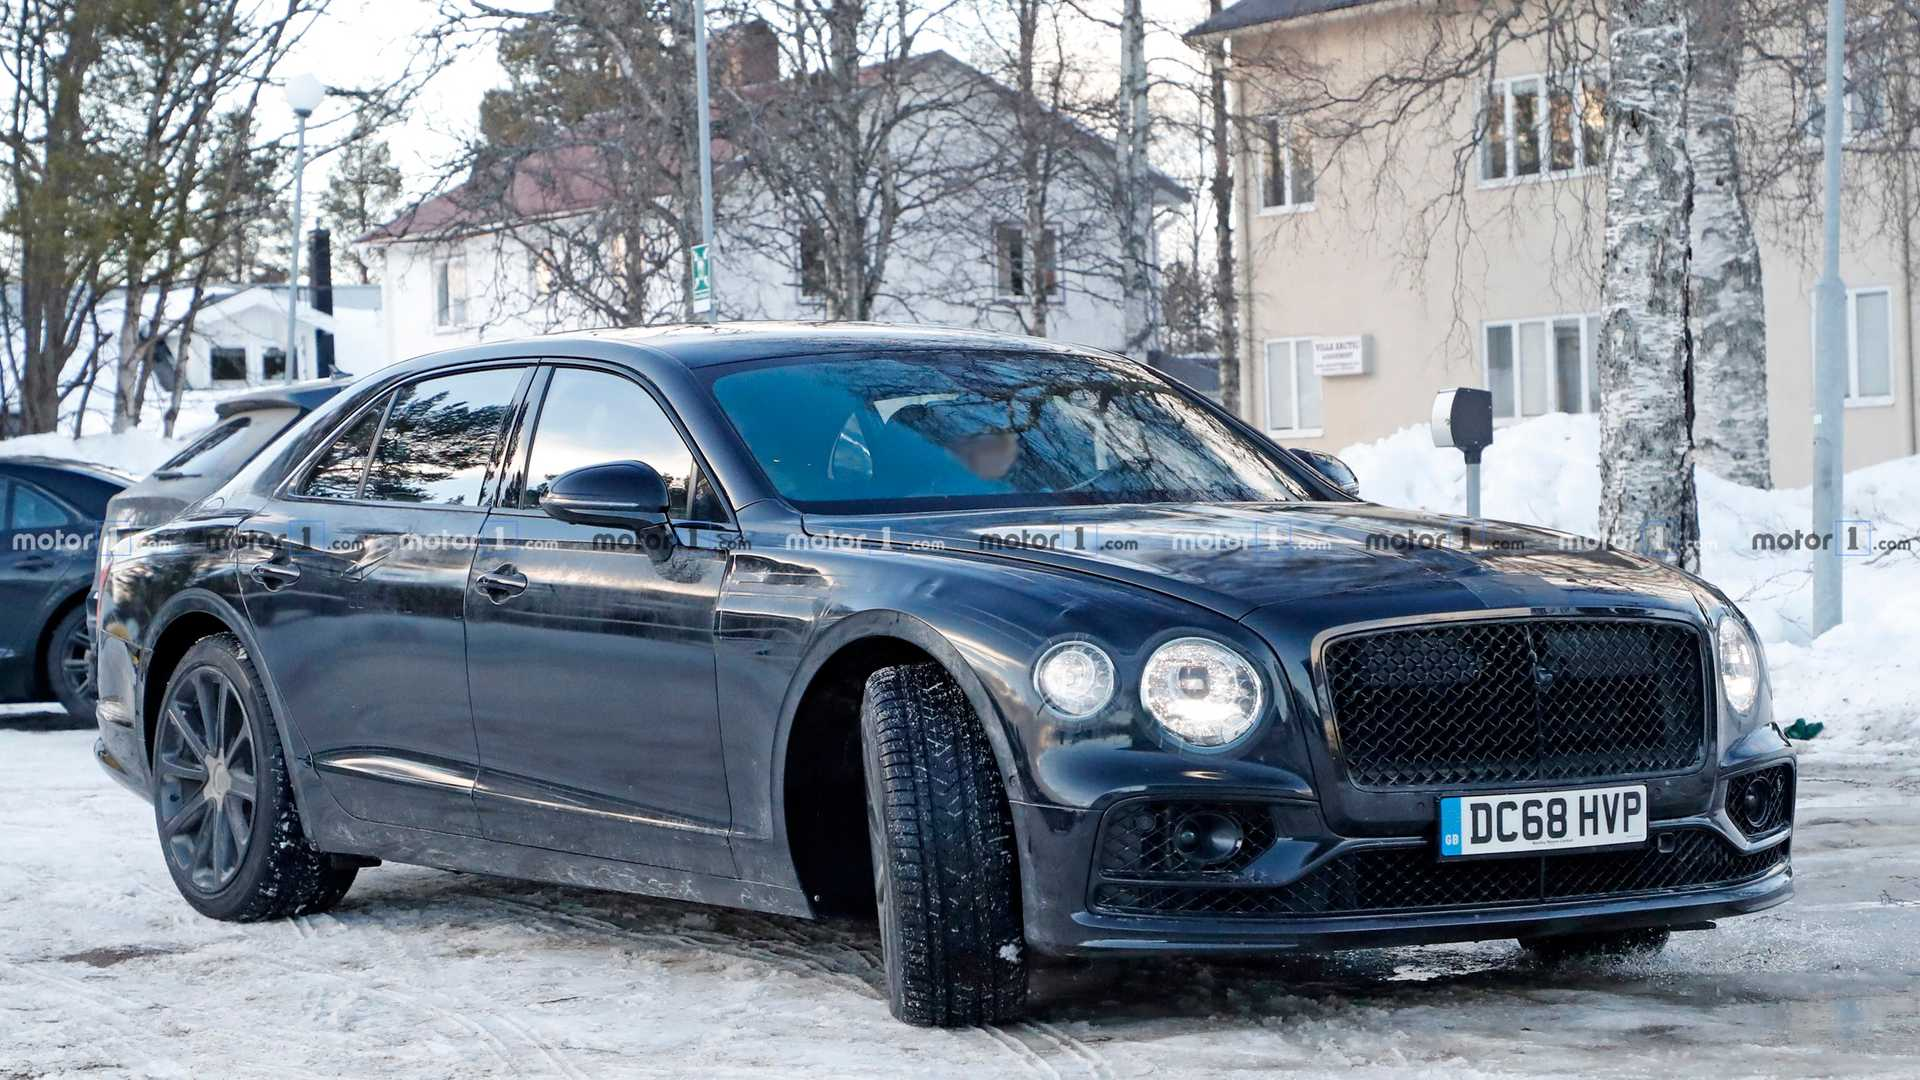 2020 Bentley Flying Spur Spied Fully Exposed In 40 Photos